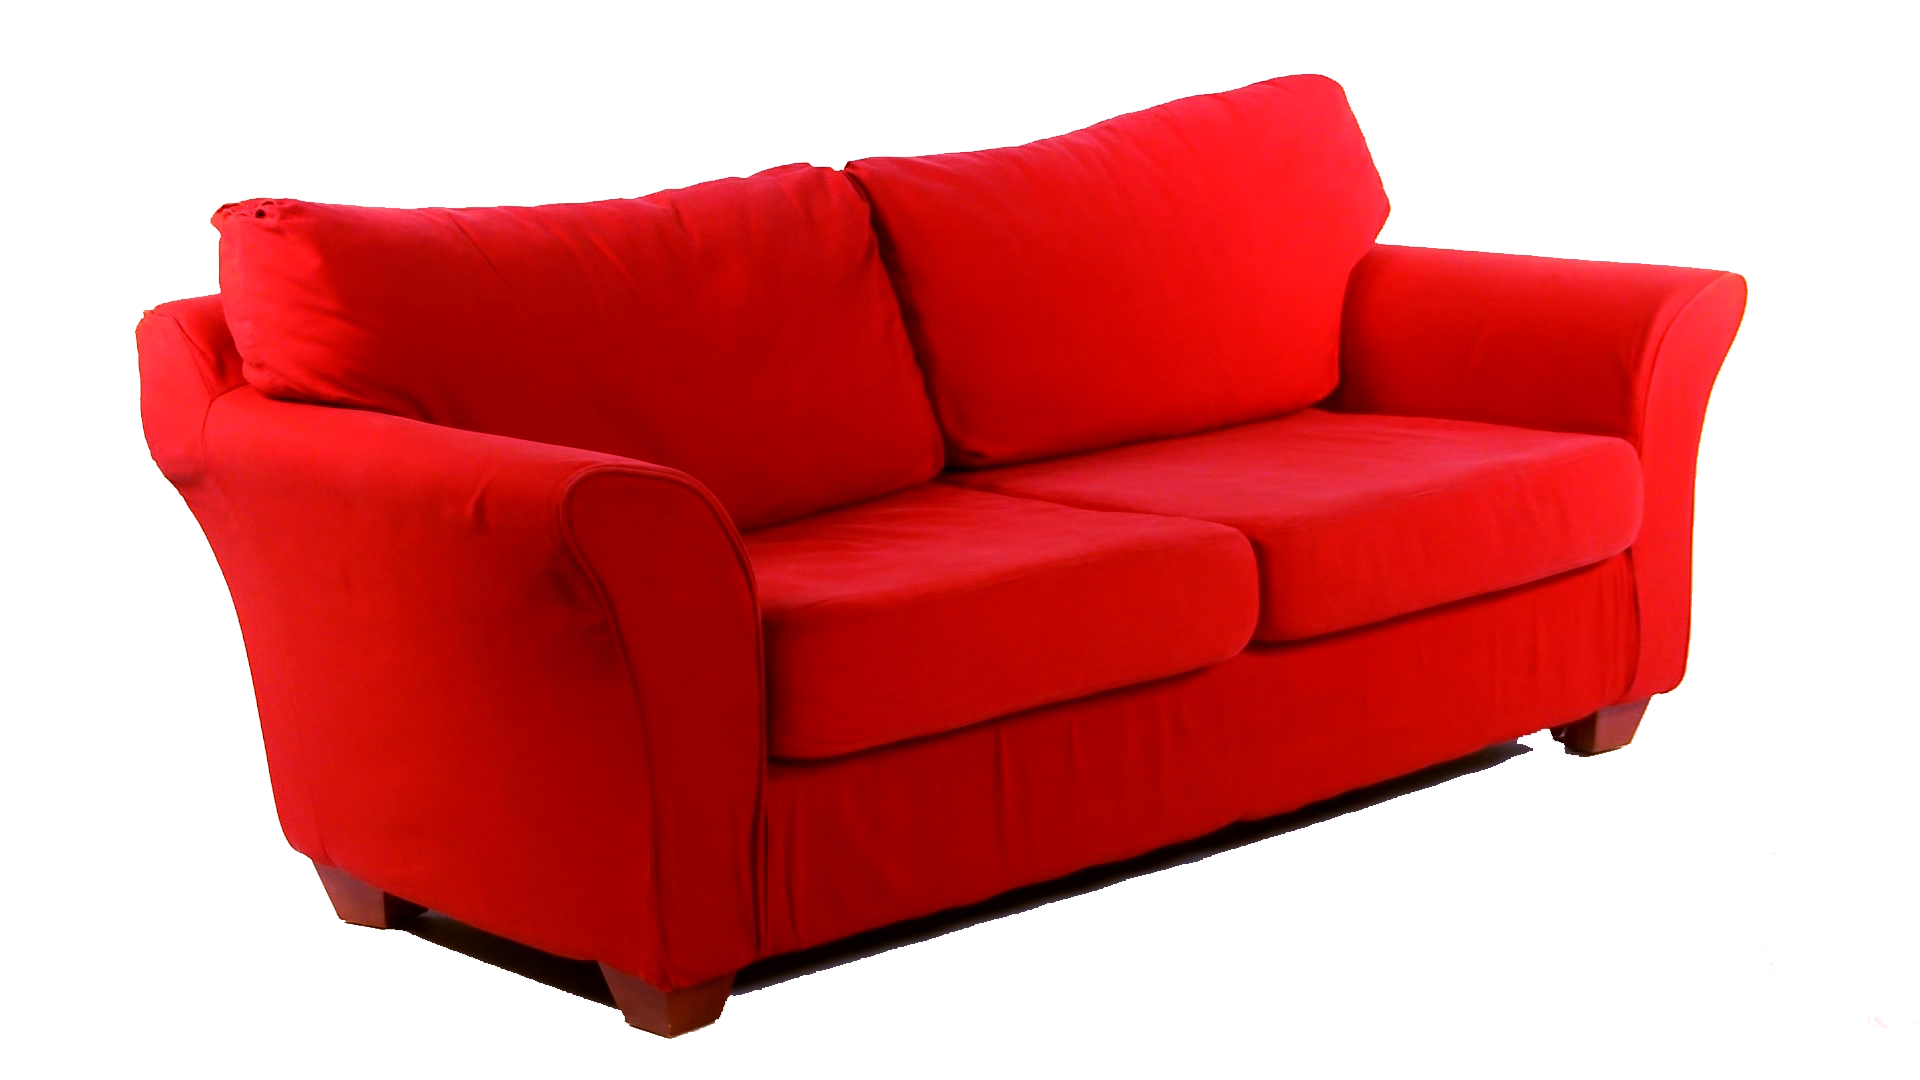 Sofa Png | Free download best Sofa Png on ClipArtMag.com